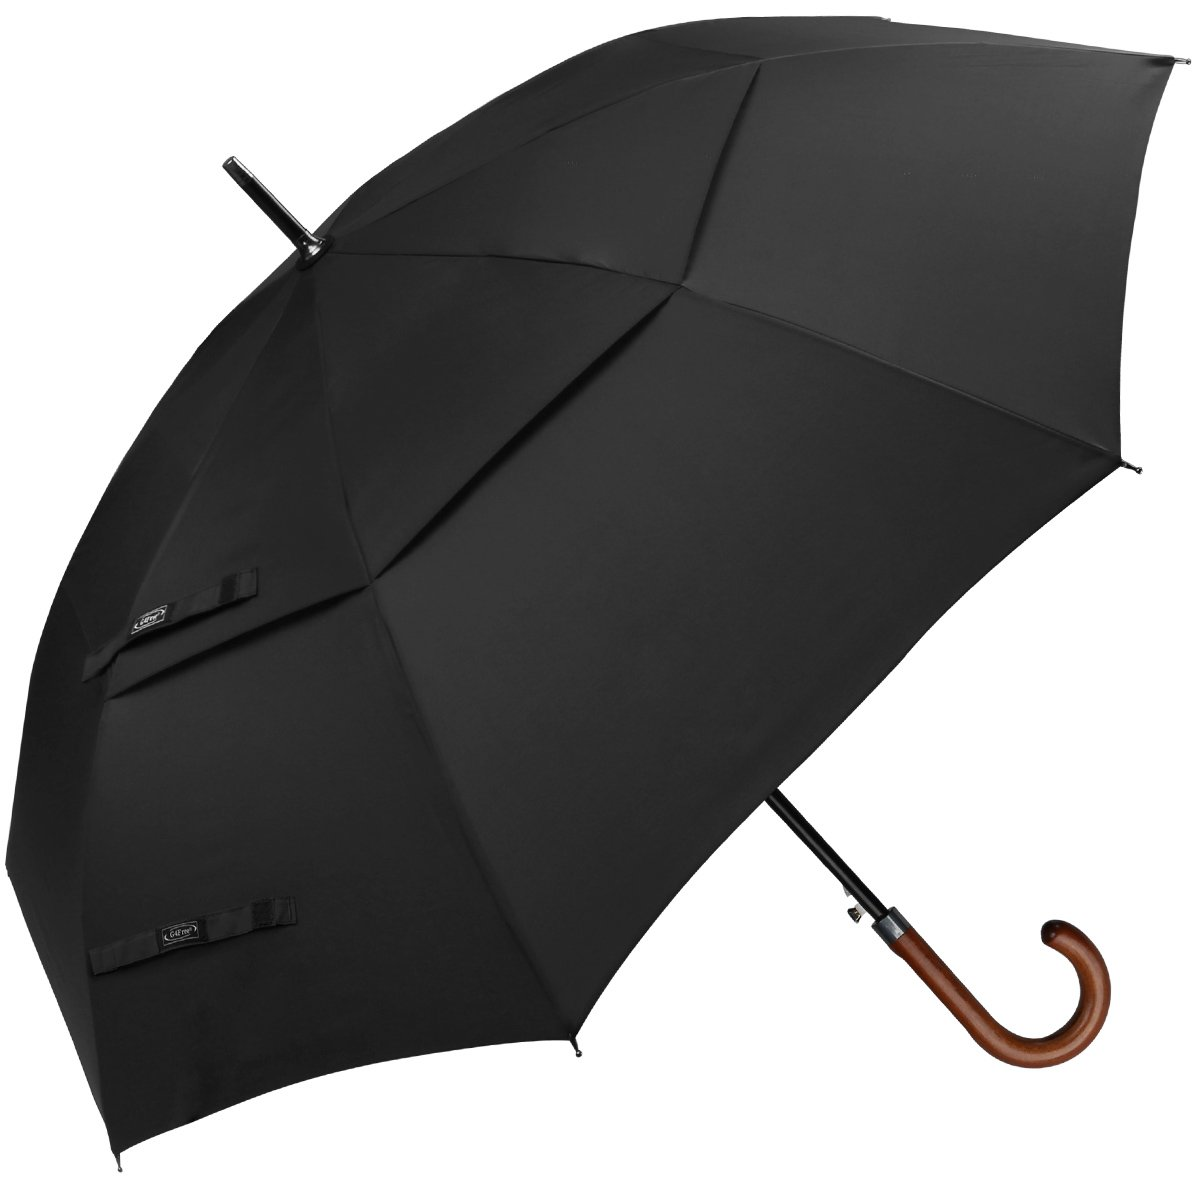 G4Free Wooden J Handle Classic Golf Umbrella Windproof Auto Open 52 inch Large Oversized Double Canopy Vented Rainproof Cane Stick Umbrellas for Men Women (Black) by G4Free